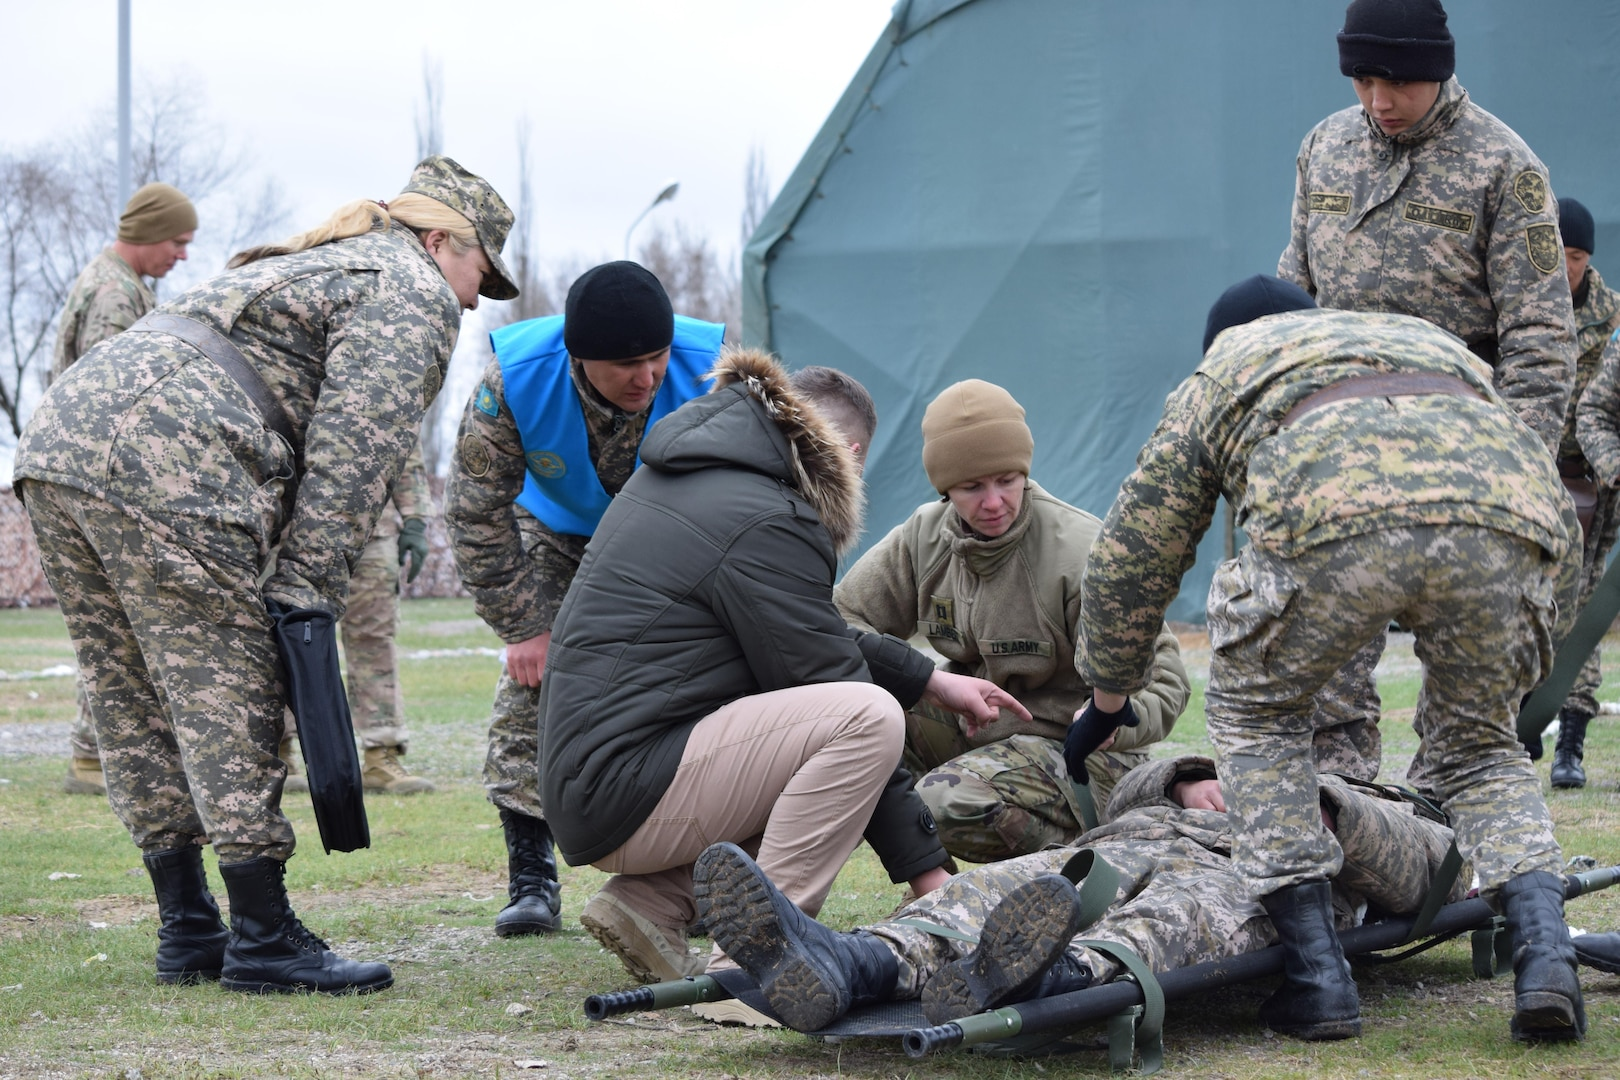 A U.S. Army Soldier with 31st Combat Support Hospital shows a Kazakhstani medic with the Kazakhstan Peacekeeping Battalion how to properly secure a patient in a litter during Steppe Eagle Koktem, Apr. 3, 2017 at Illisky Training Center, Kazakhstan.